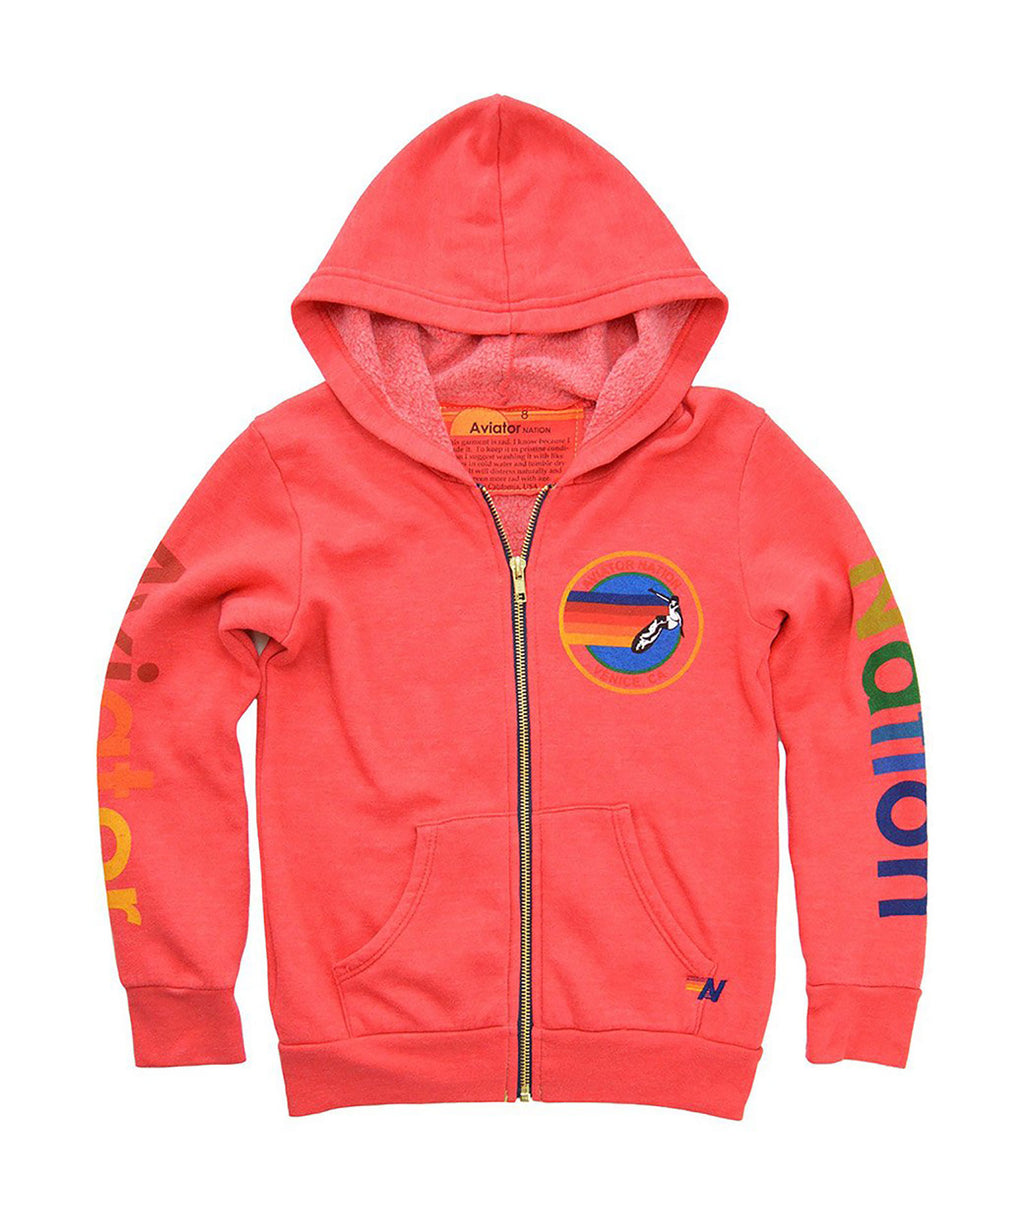 Aviator Nation Girls Neon Red Zip Hoodie